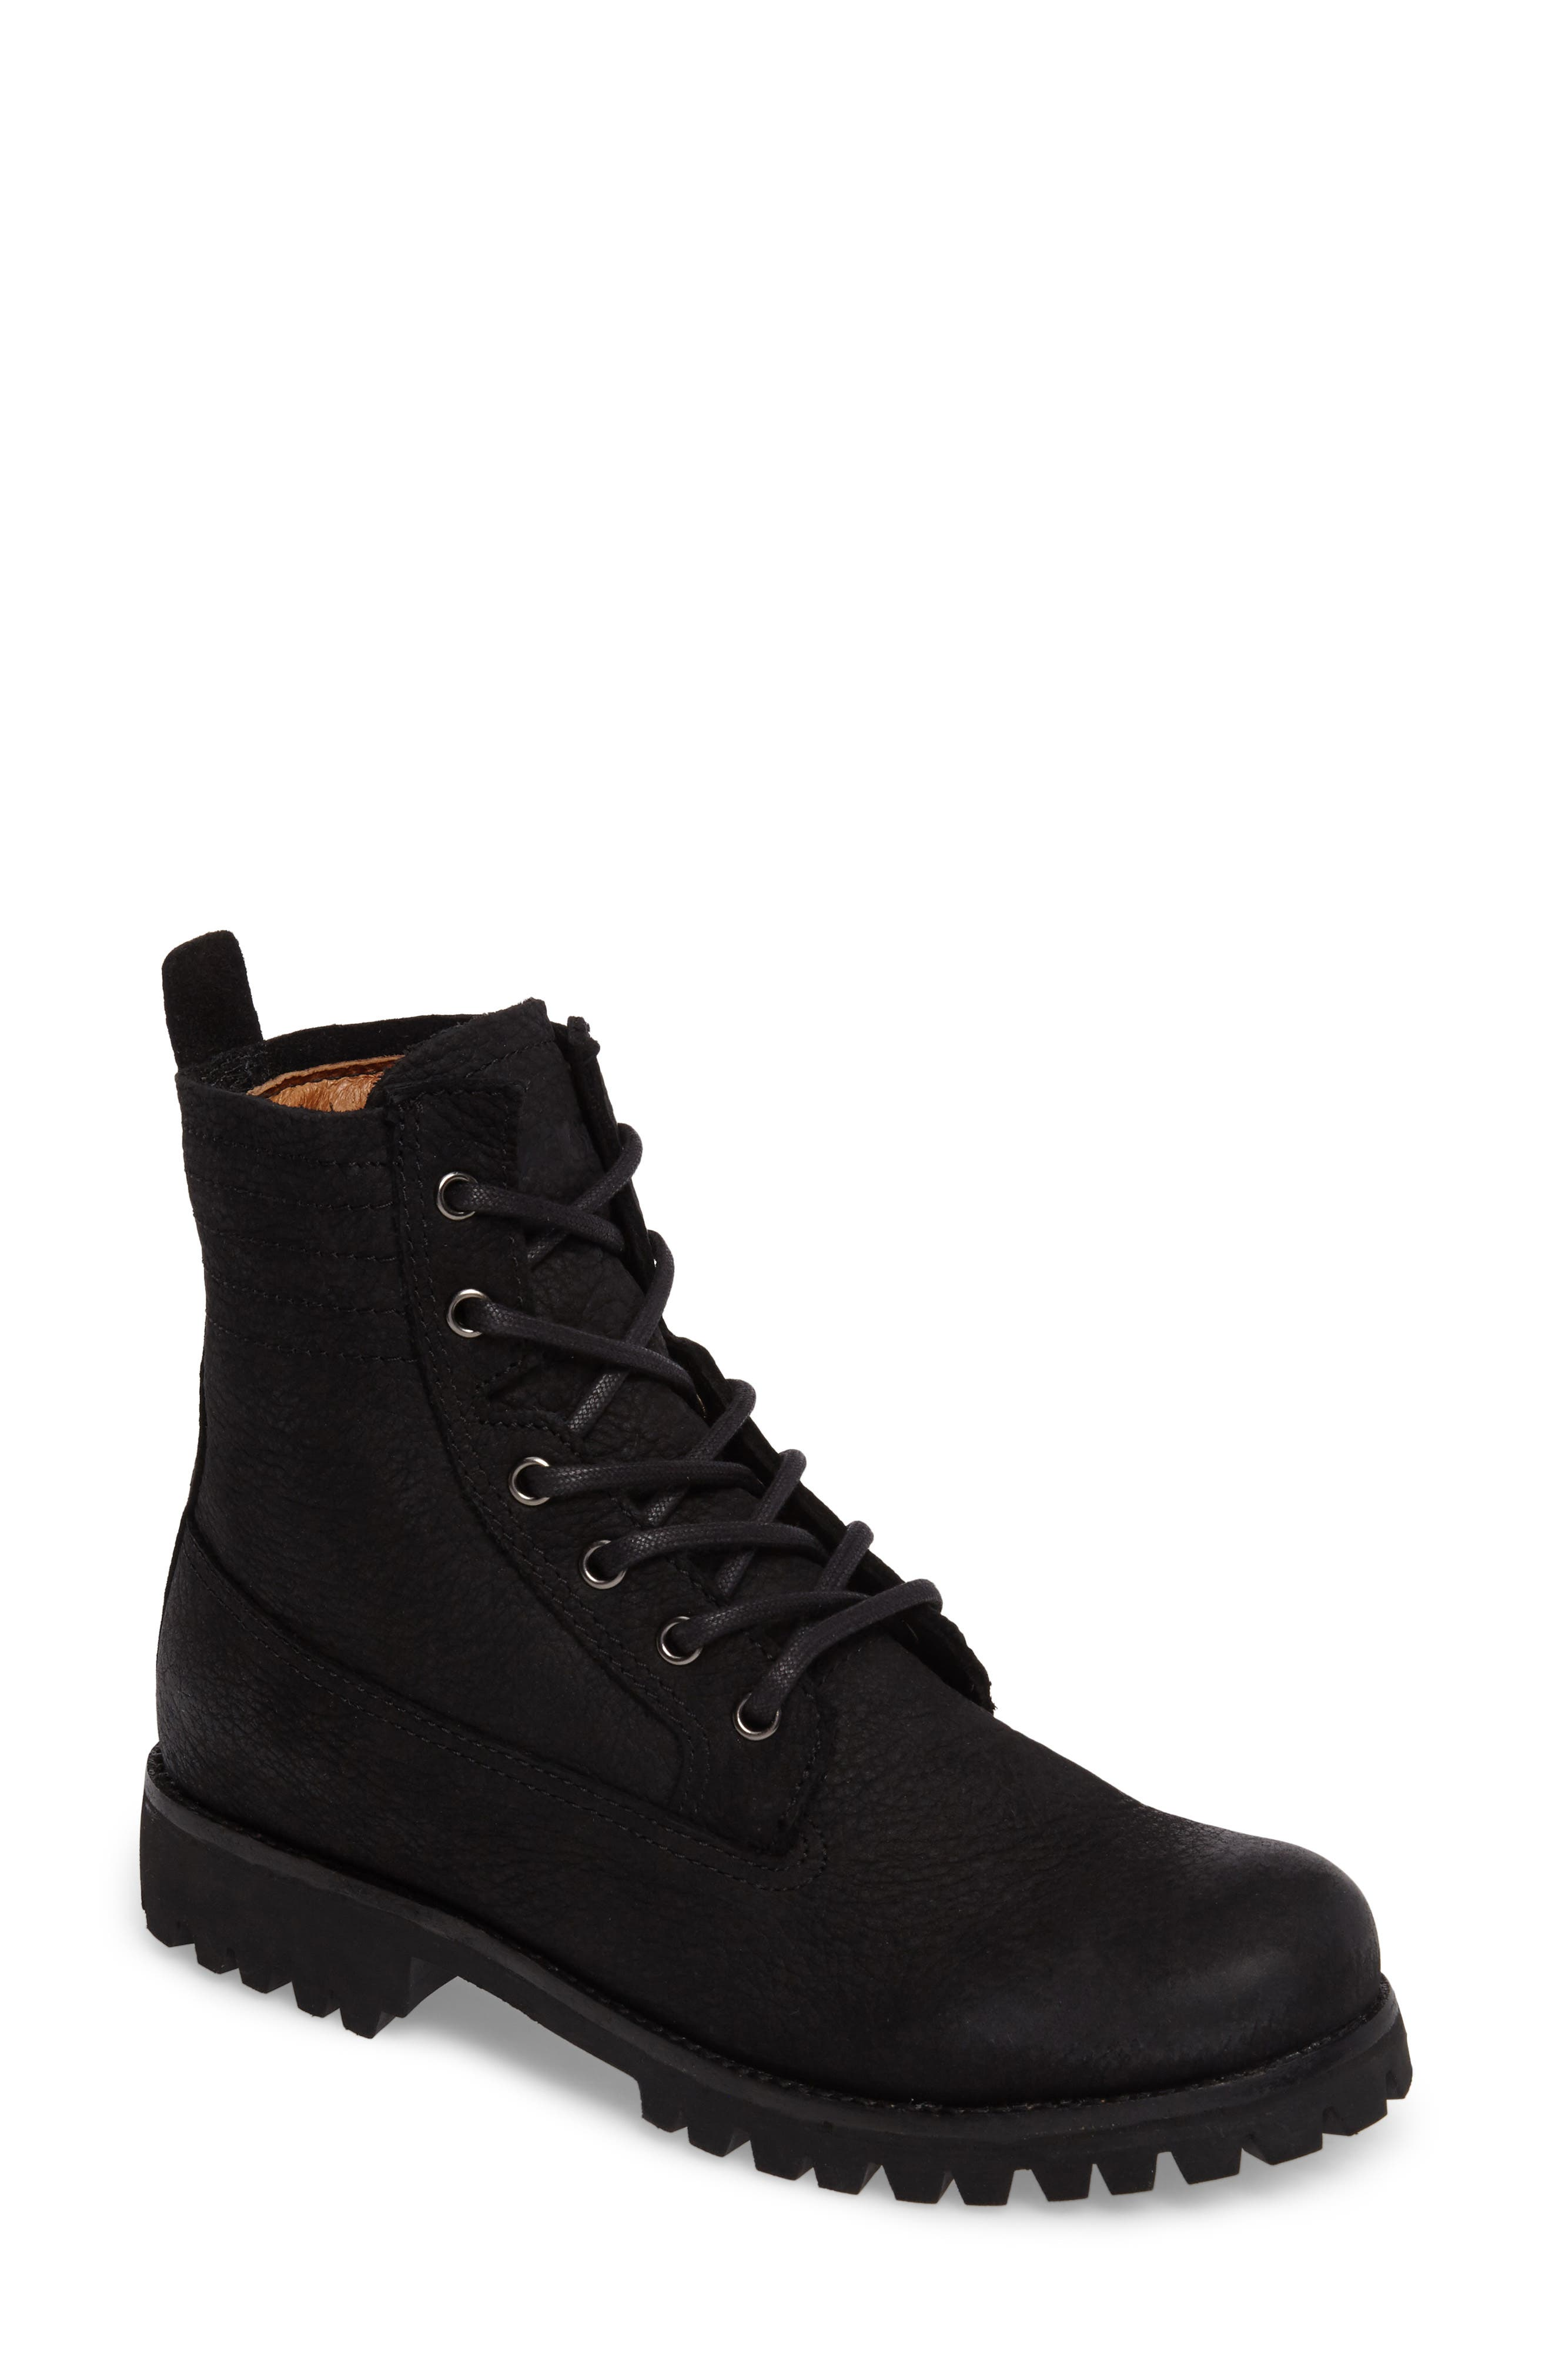 Blackstone Ol23 Lace-Up Boot Black